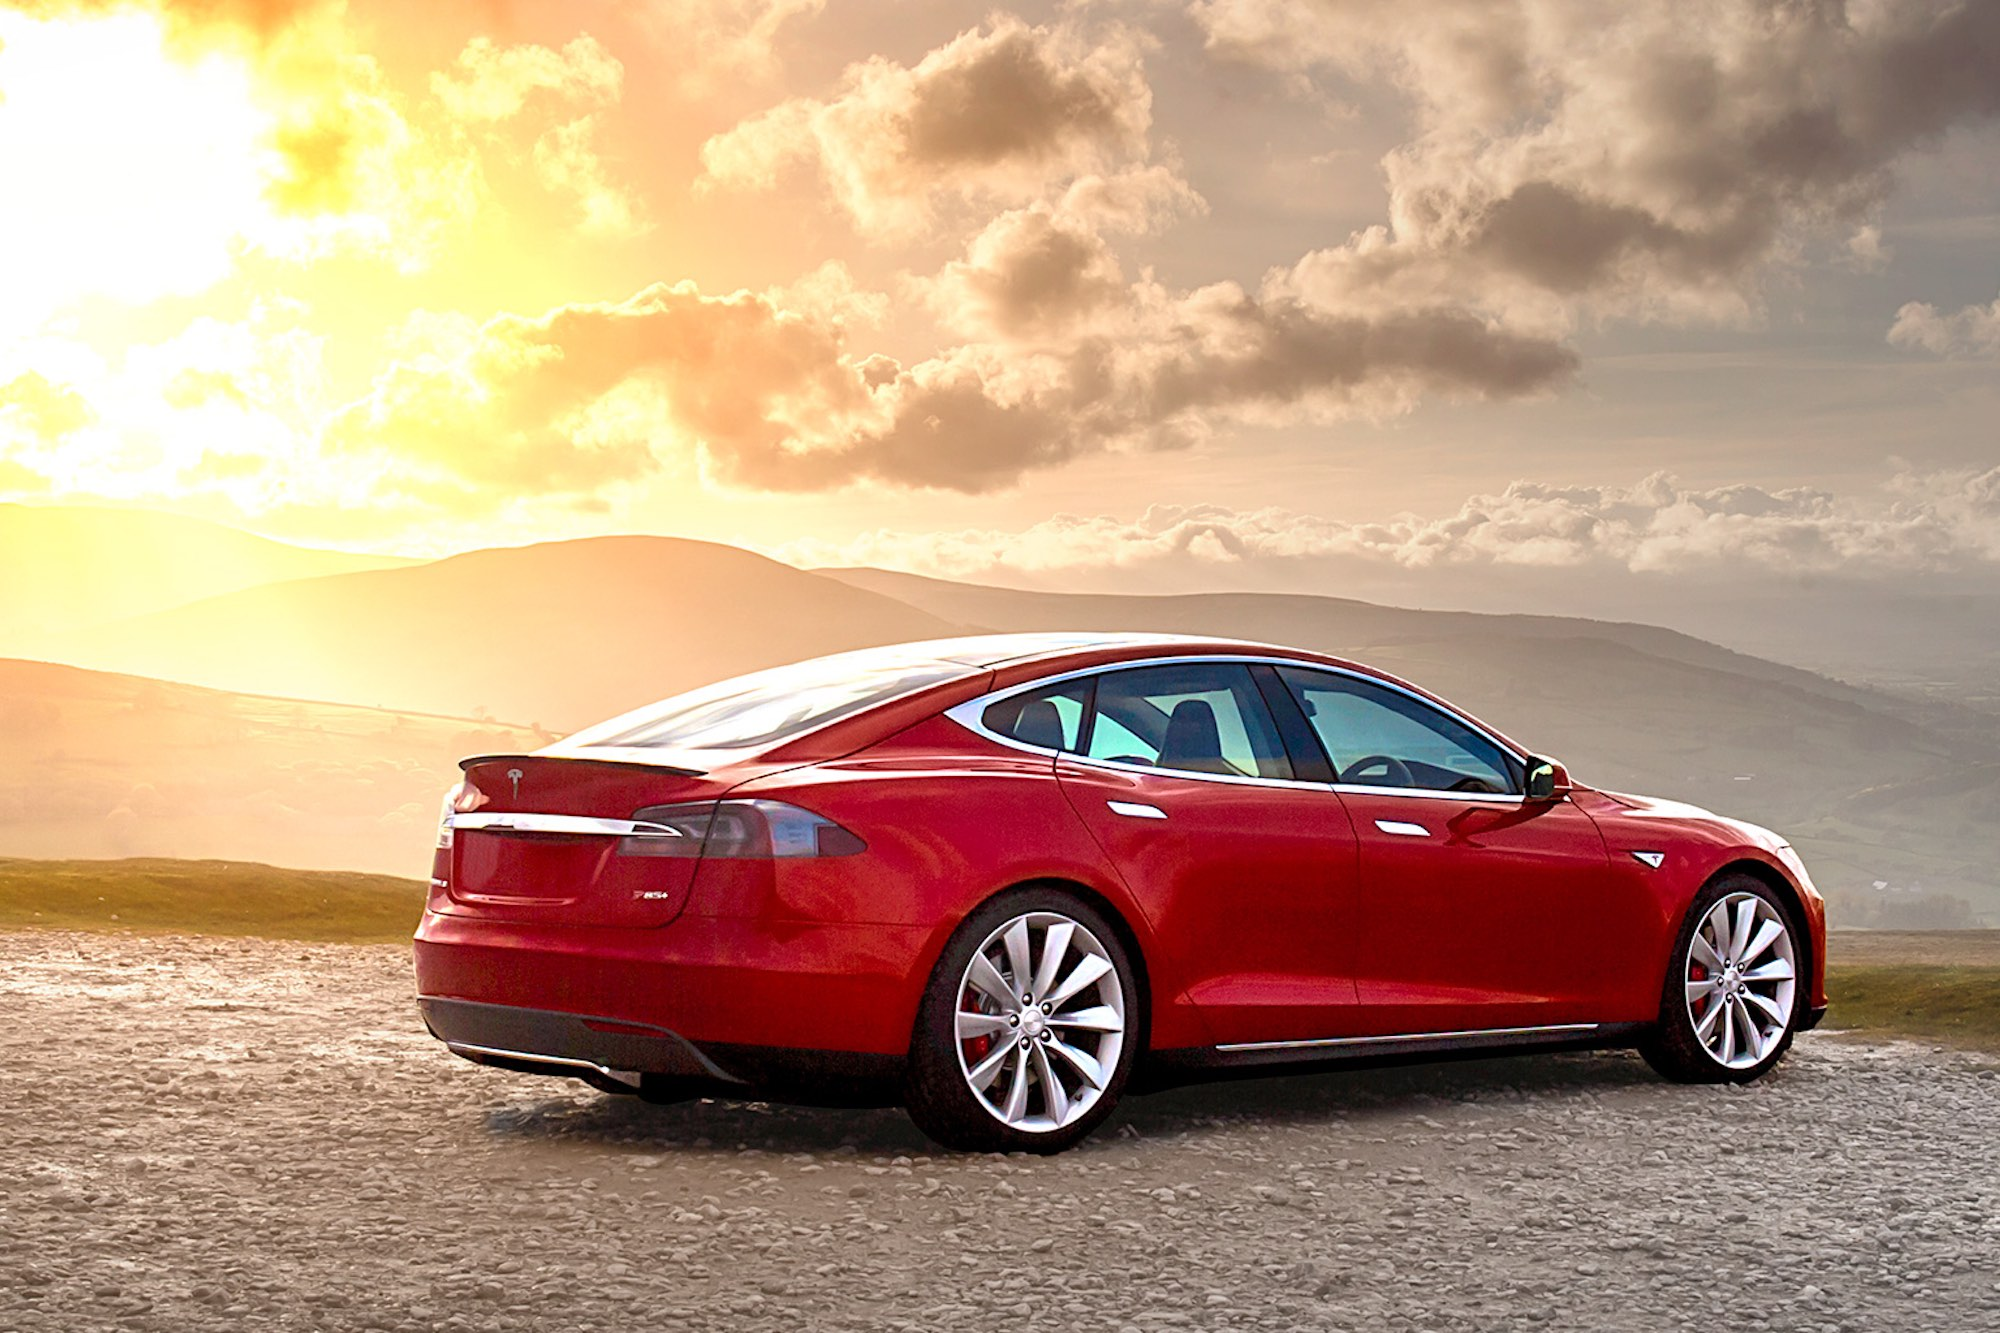 Tesla Model S at sunset